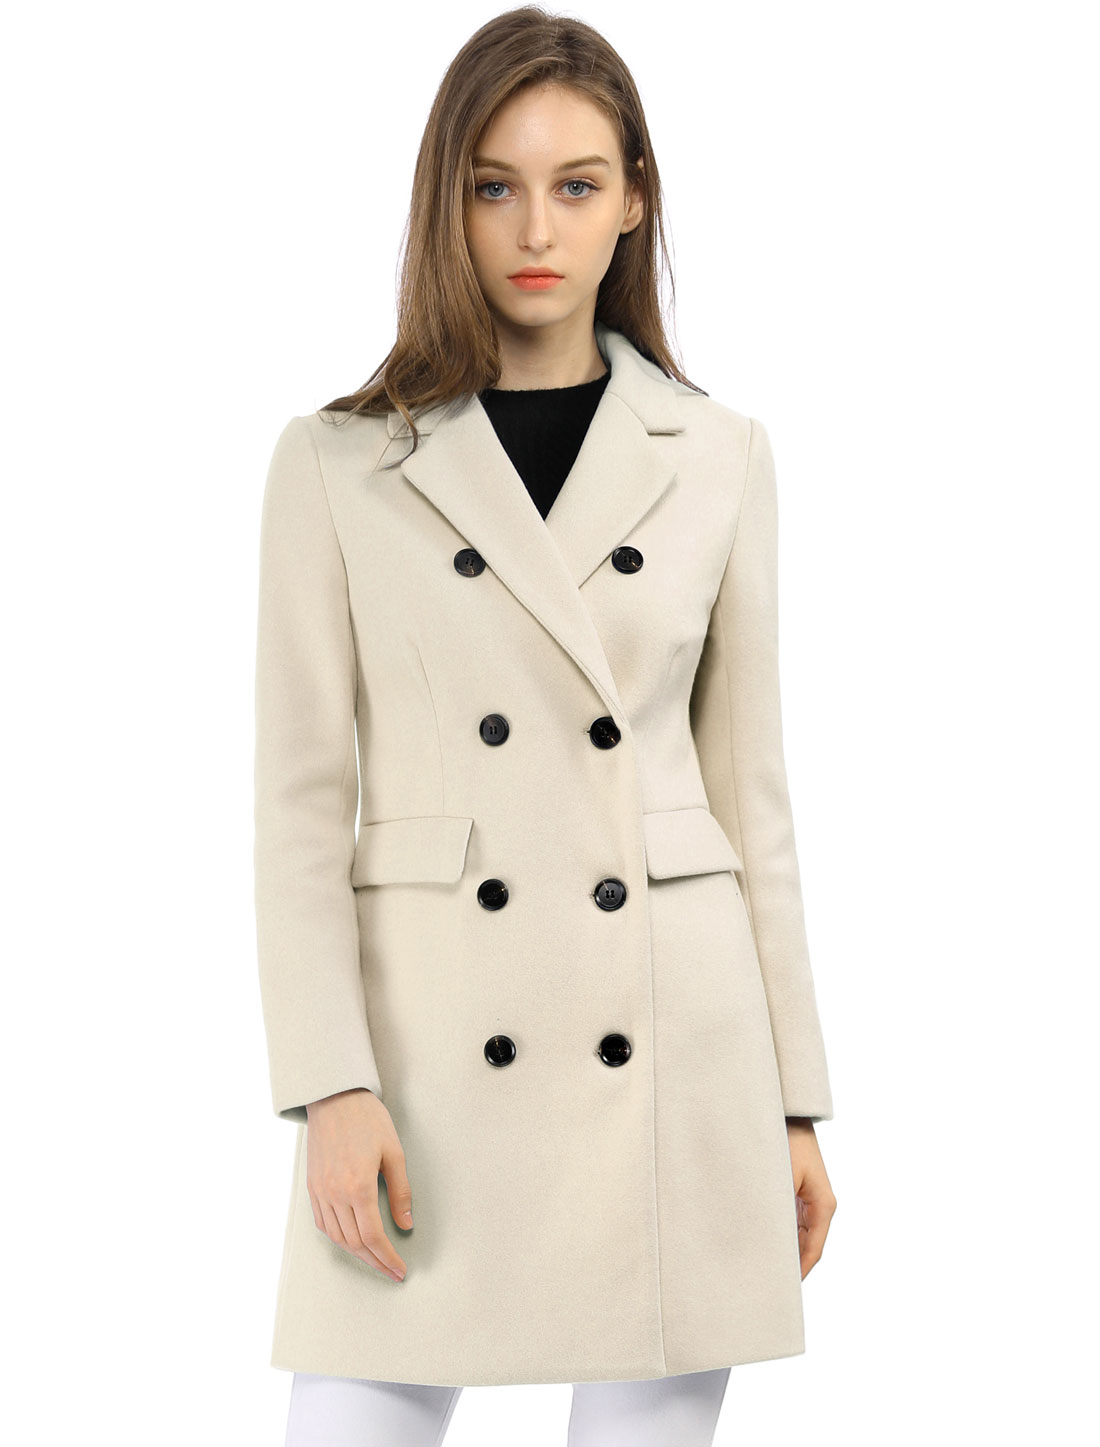 Women Notched Lapel Double Breasted Trench Coat Beige XS